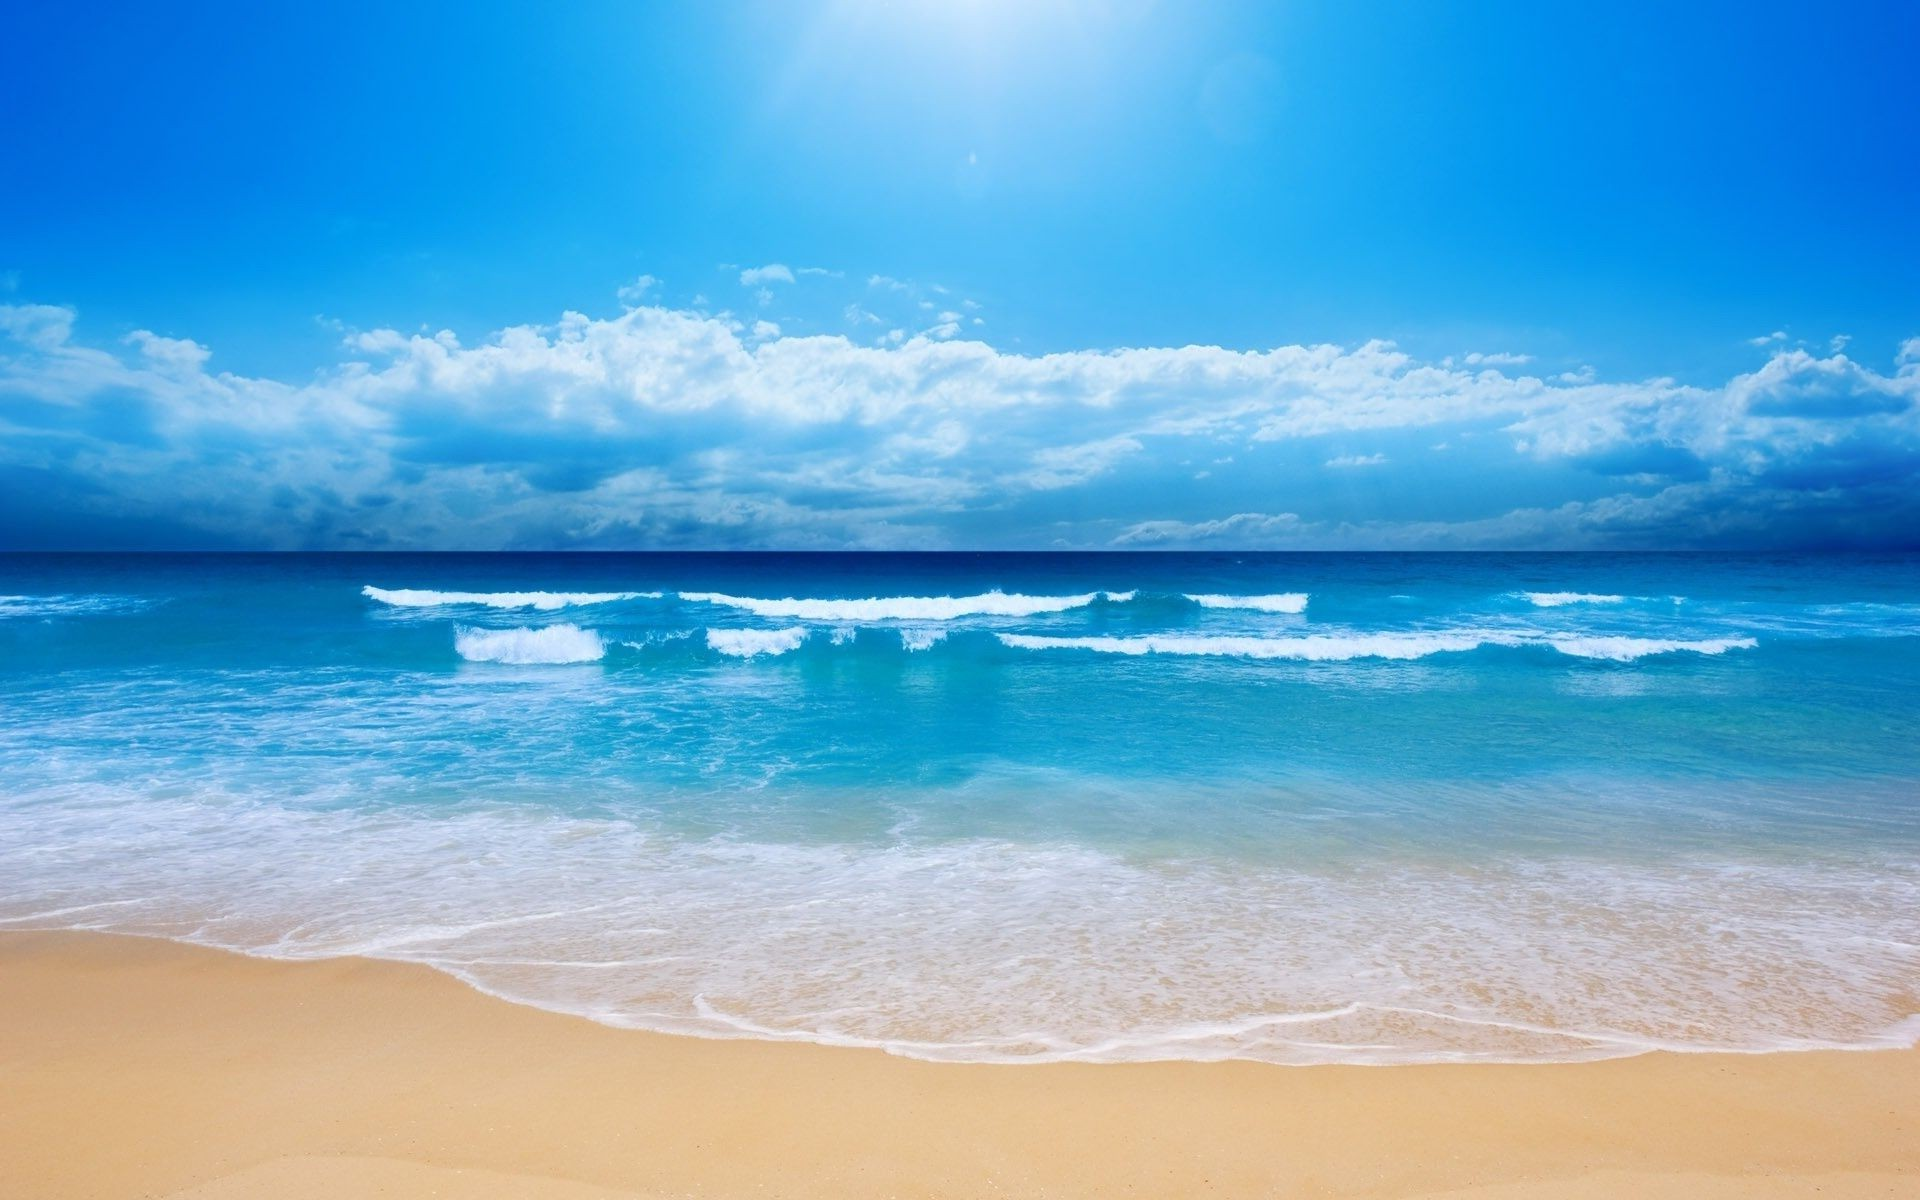 sea and ocean sand water tropical beach summer sun surf travel fair weather sea seashore seascape sky ocean nature relaxation turquoise idyllic vacation